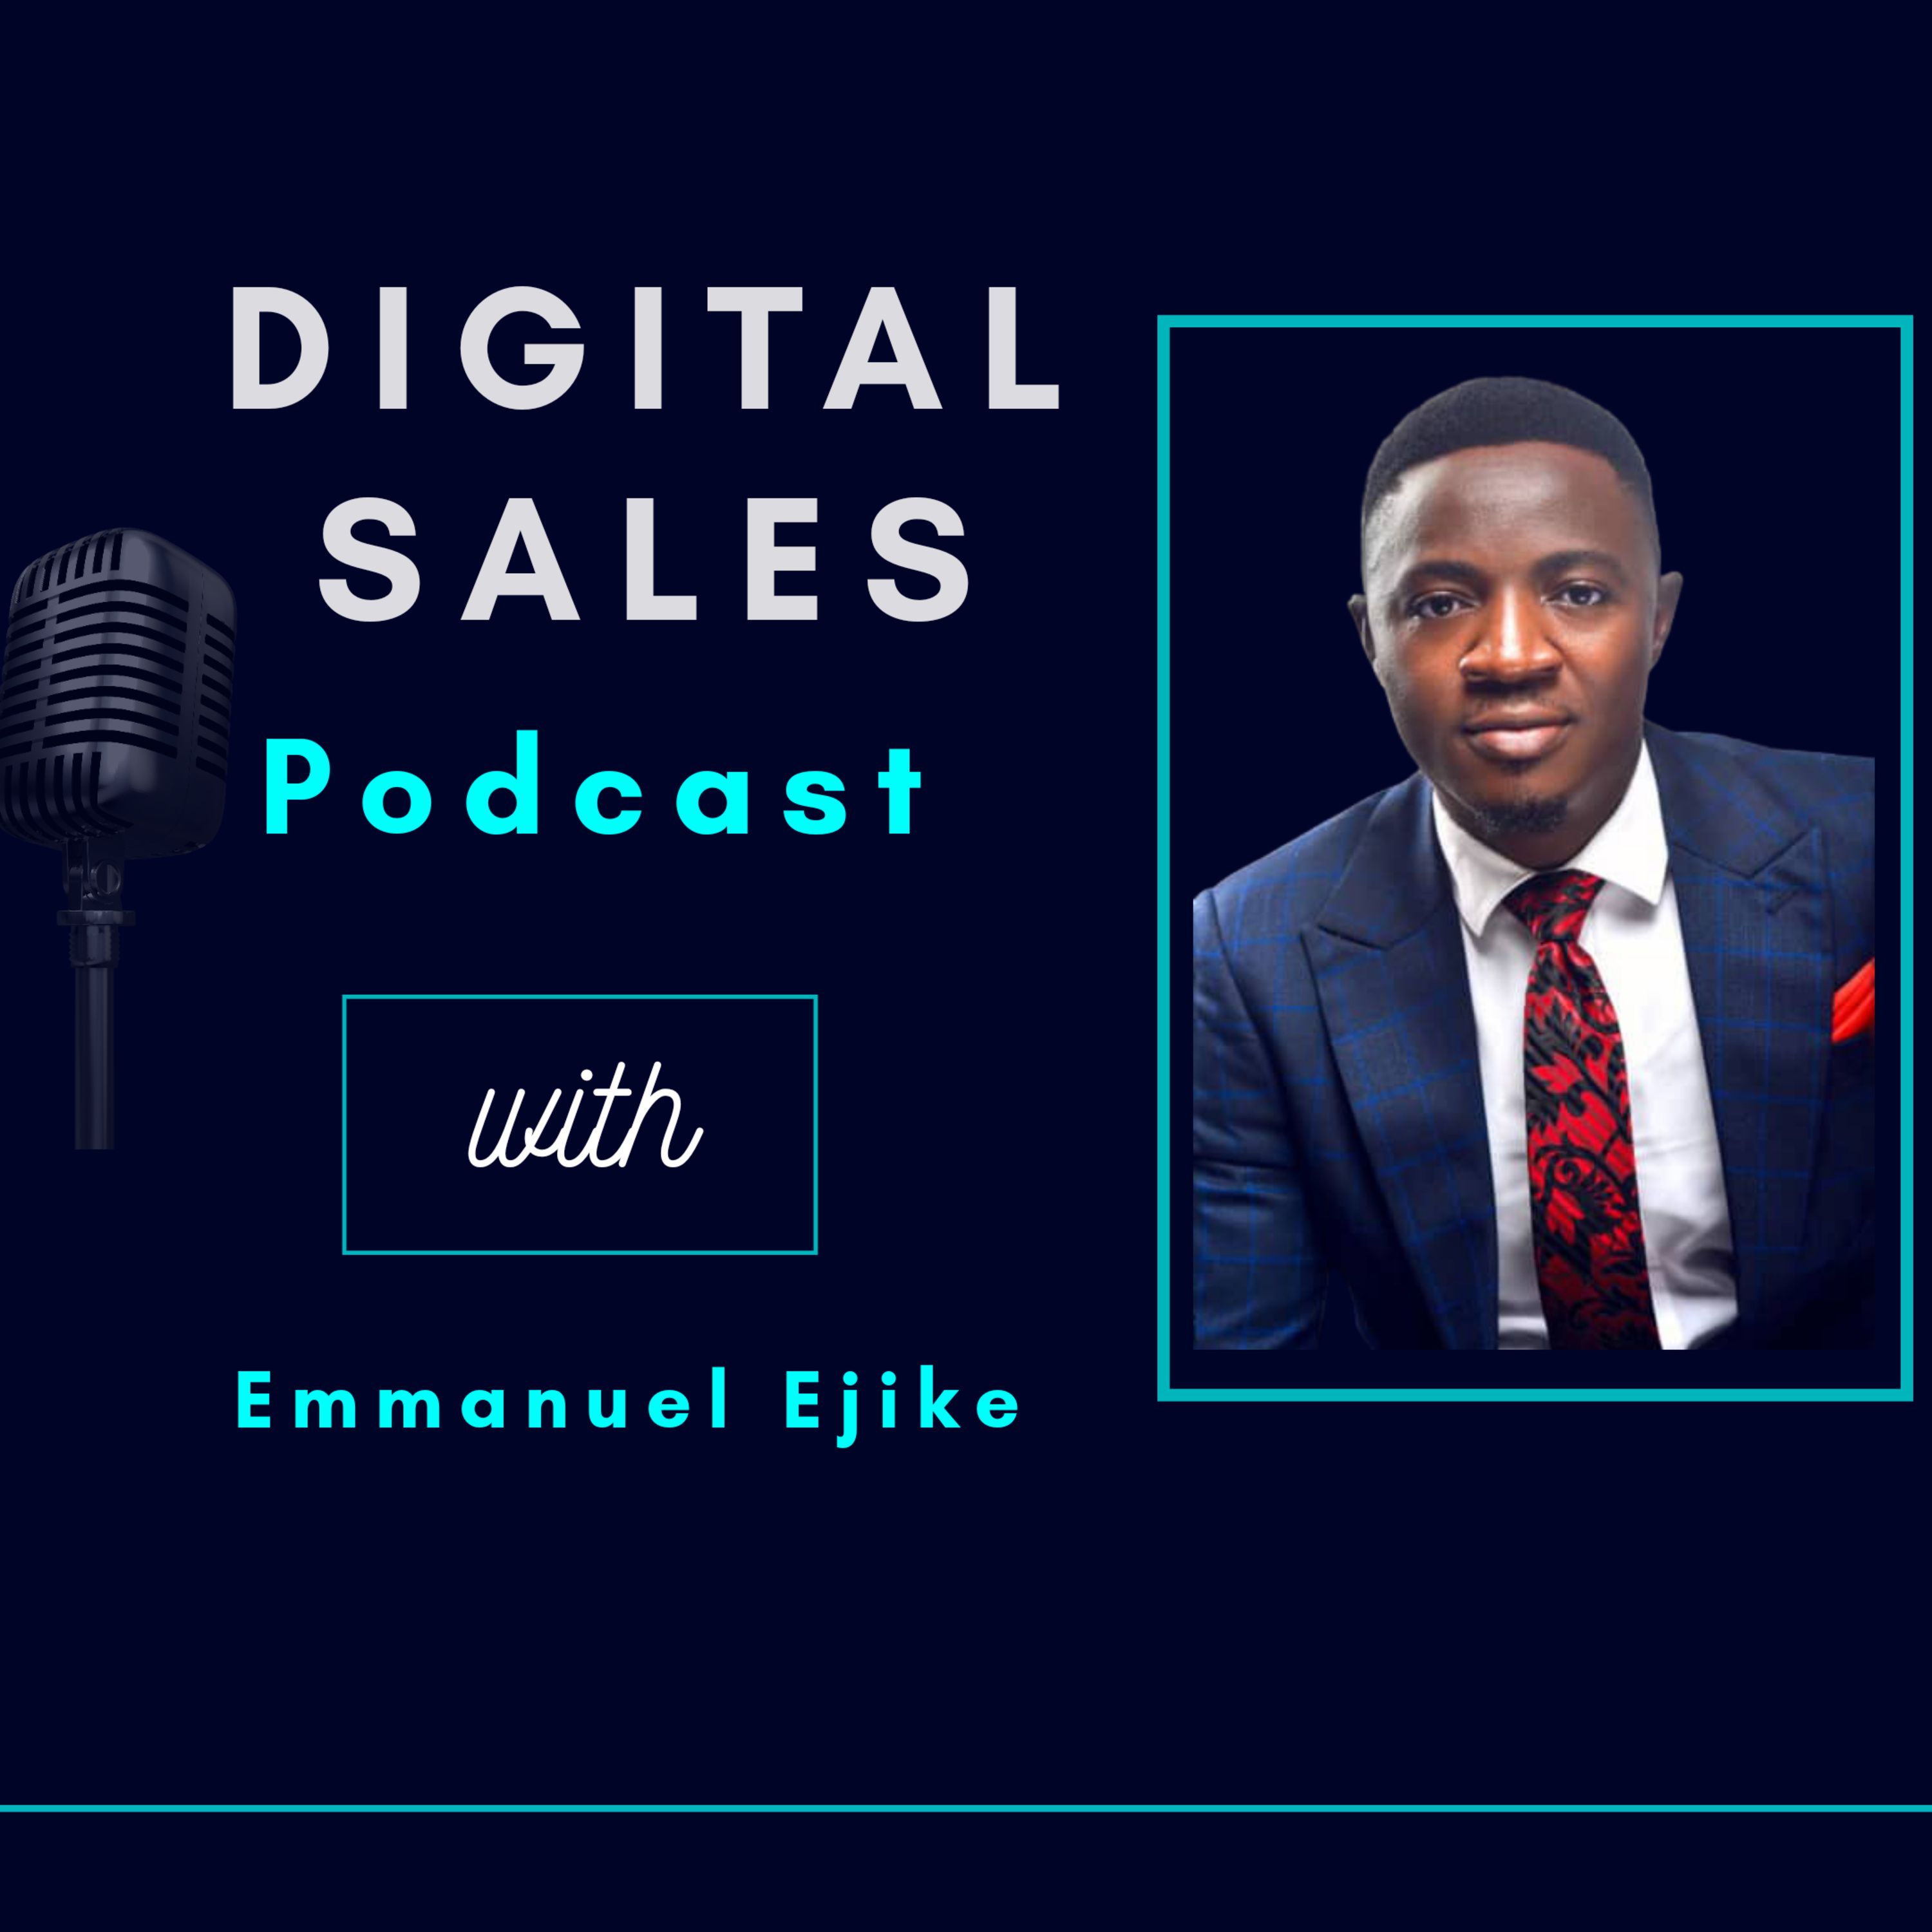 DIGITAL SALES PODCAST podcast